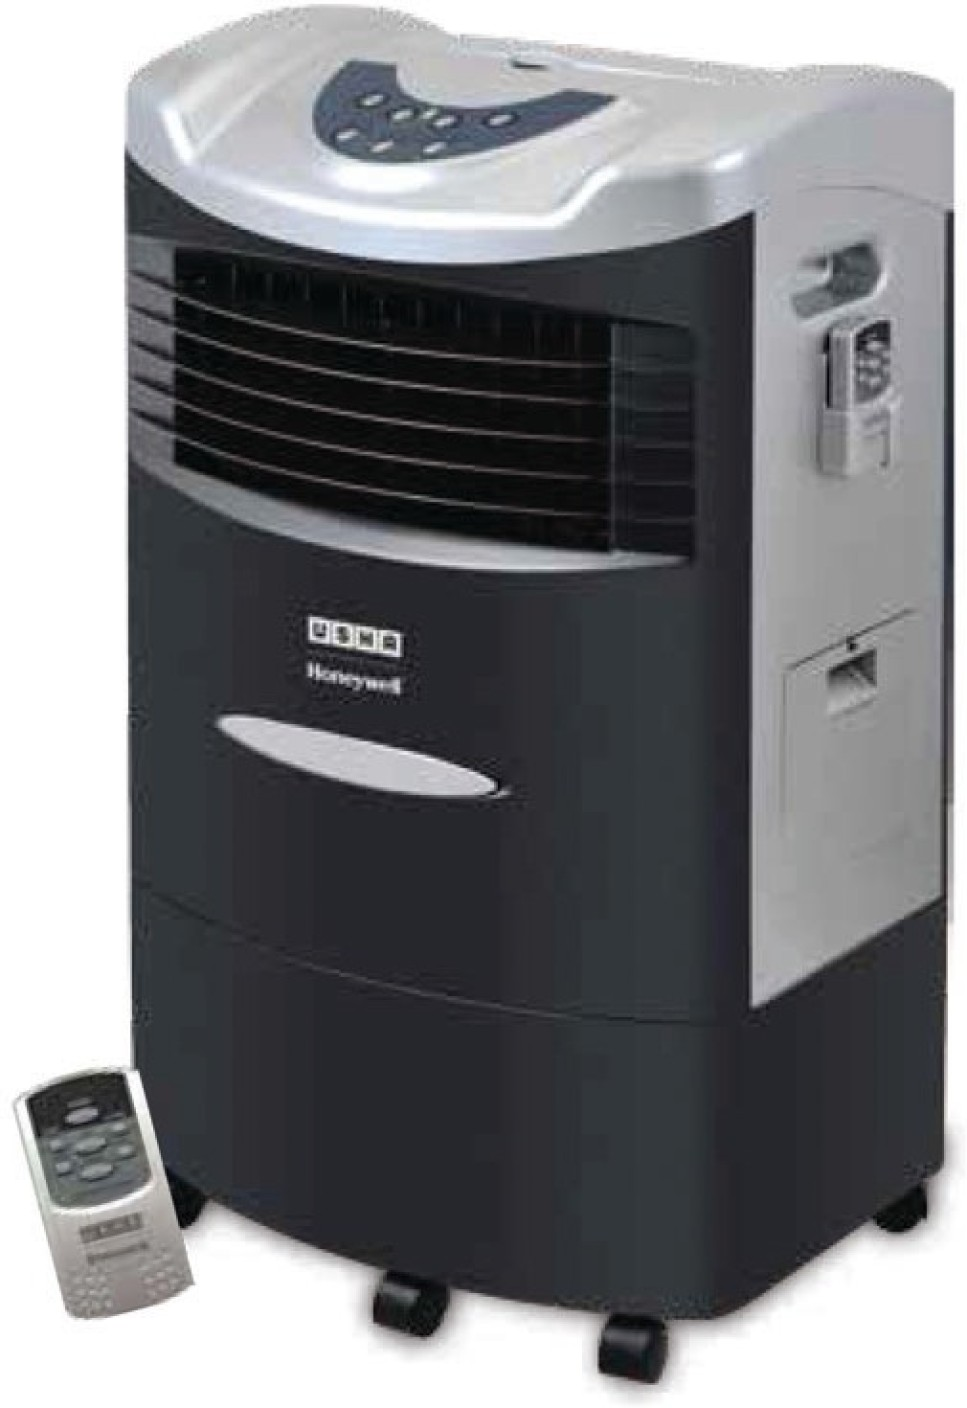 usha honeywell cl201ae personal air cooler price in. Black Bedroom Furniture Sets. Home Design Ideas